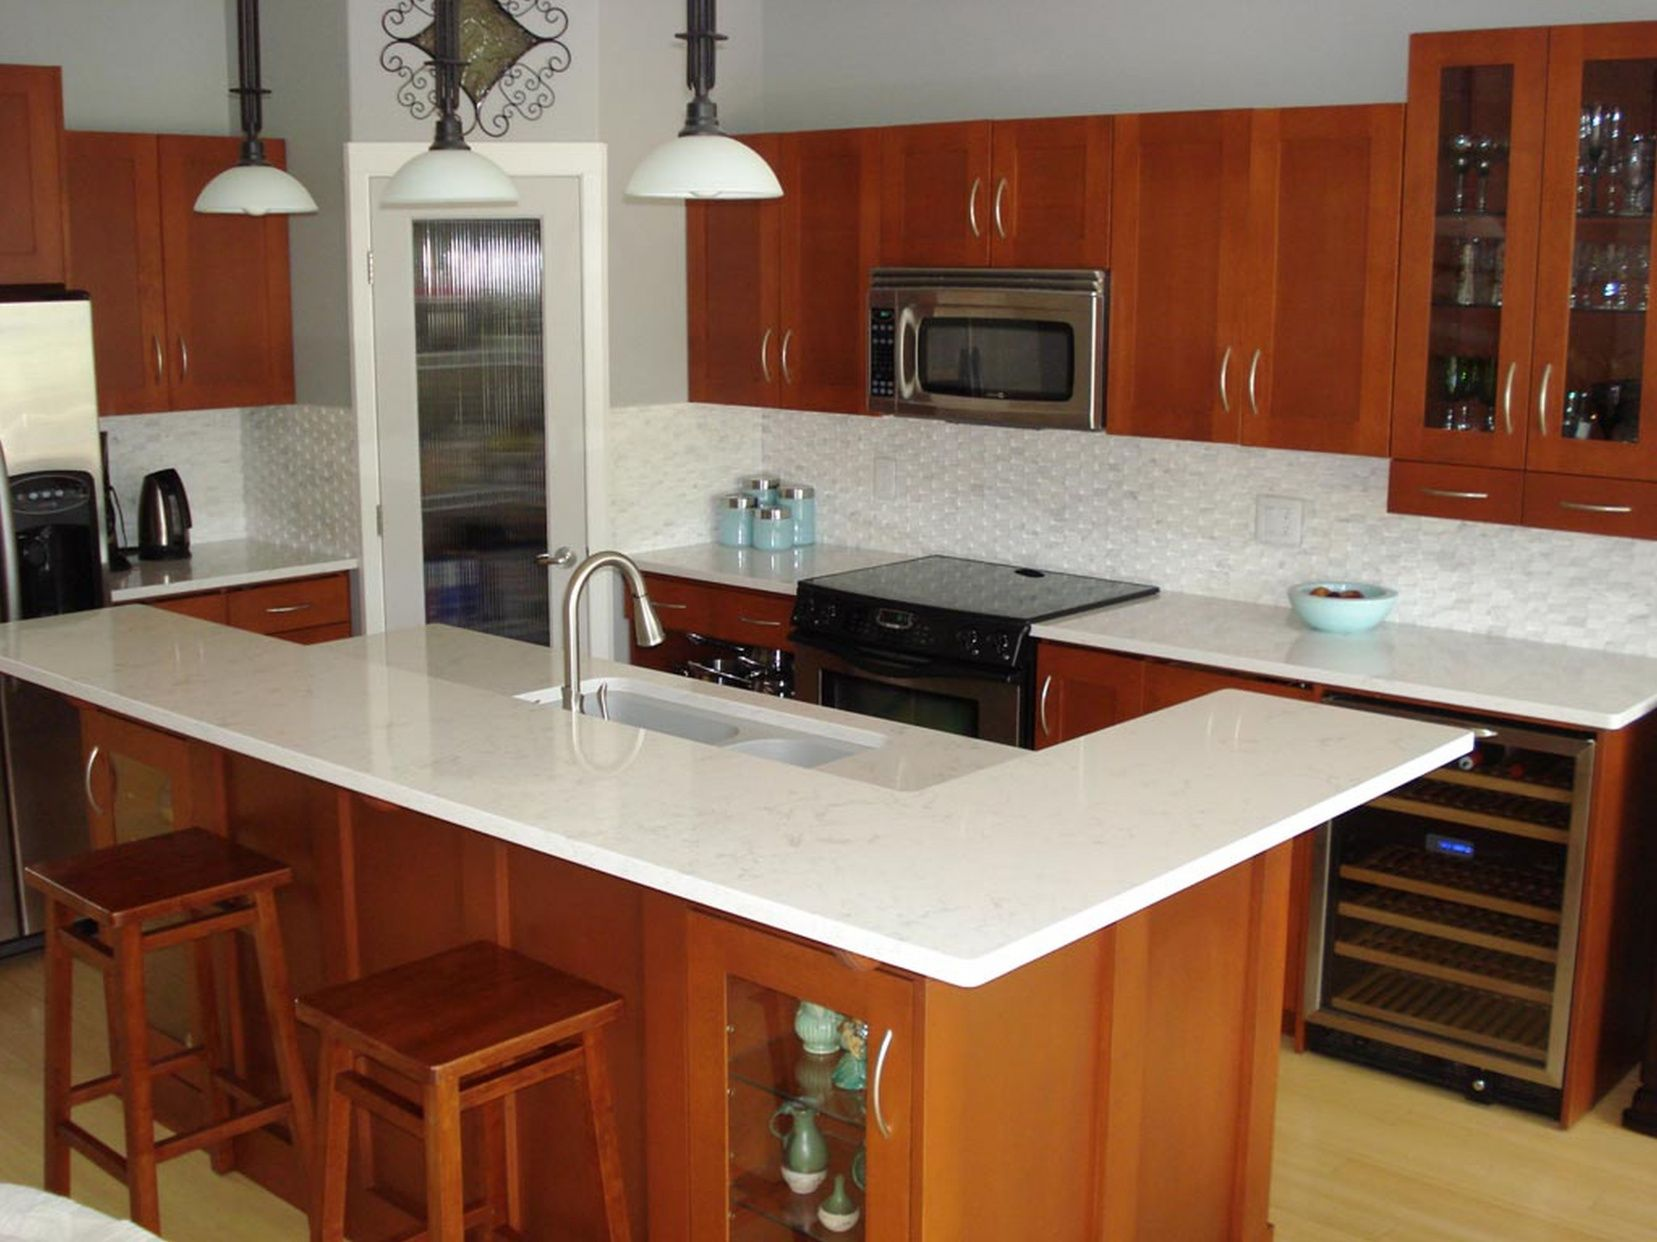 Superb 77+ Quartz Countertop Cleaning   Kitchen Island Countertop Ideas Check More  At Http:/ Gallery